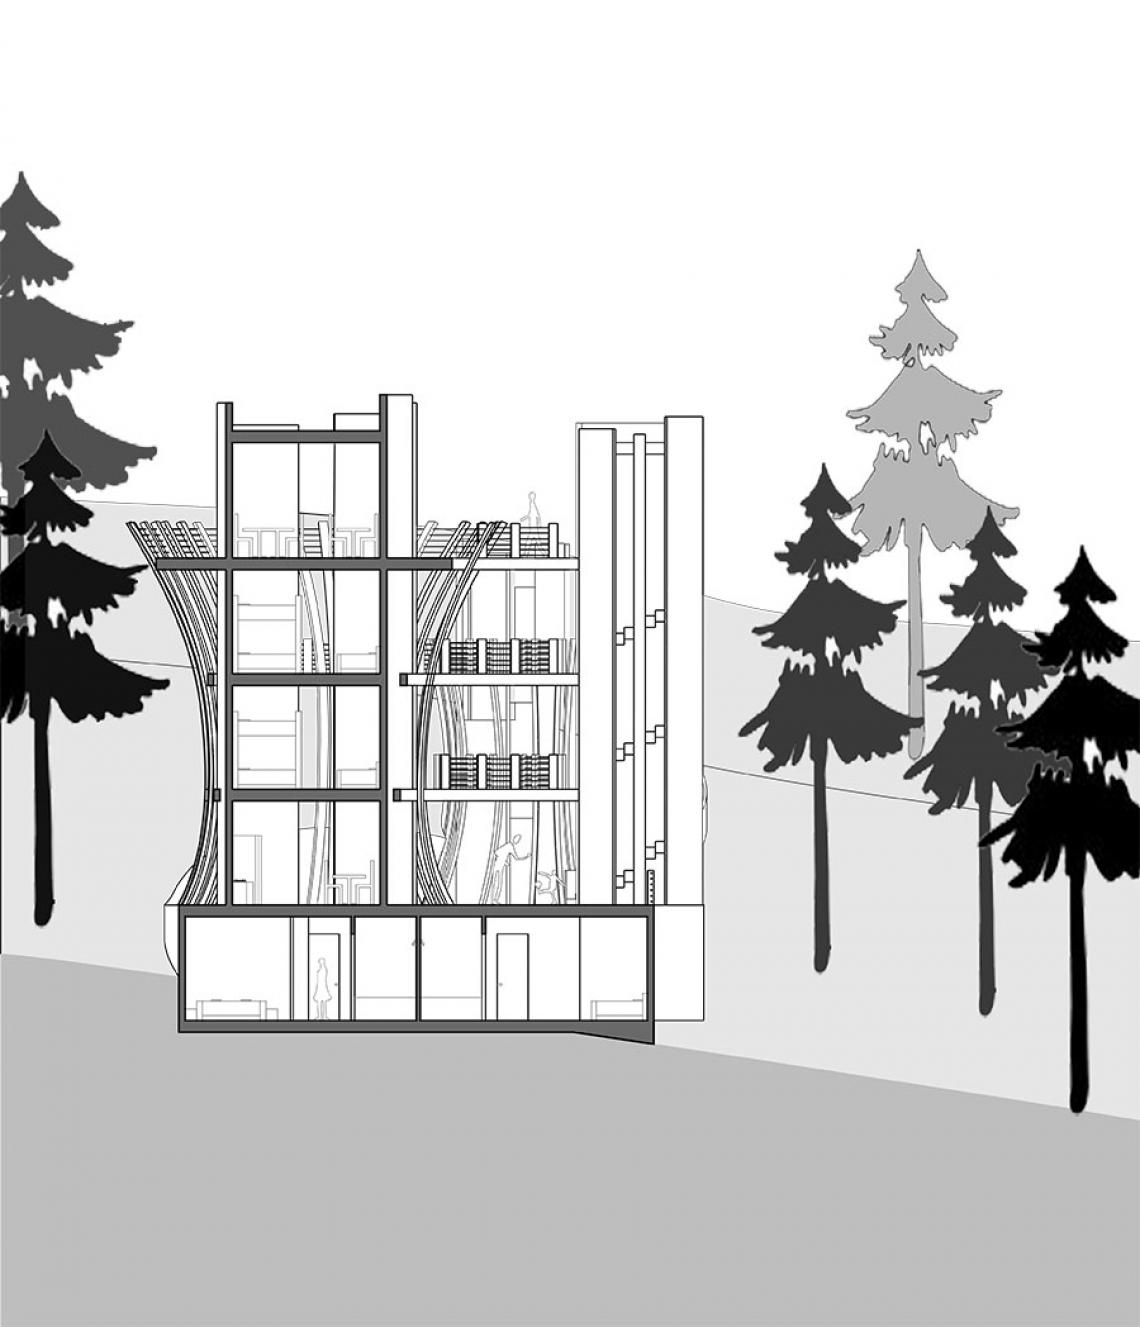 Climate and Research Center cross-section drawing by Lydia Roberts